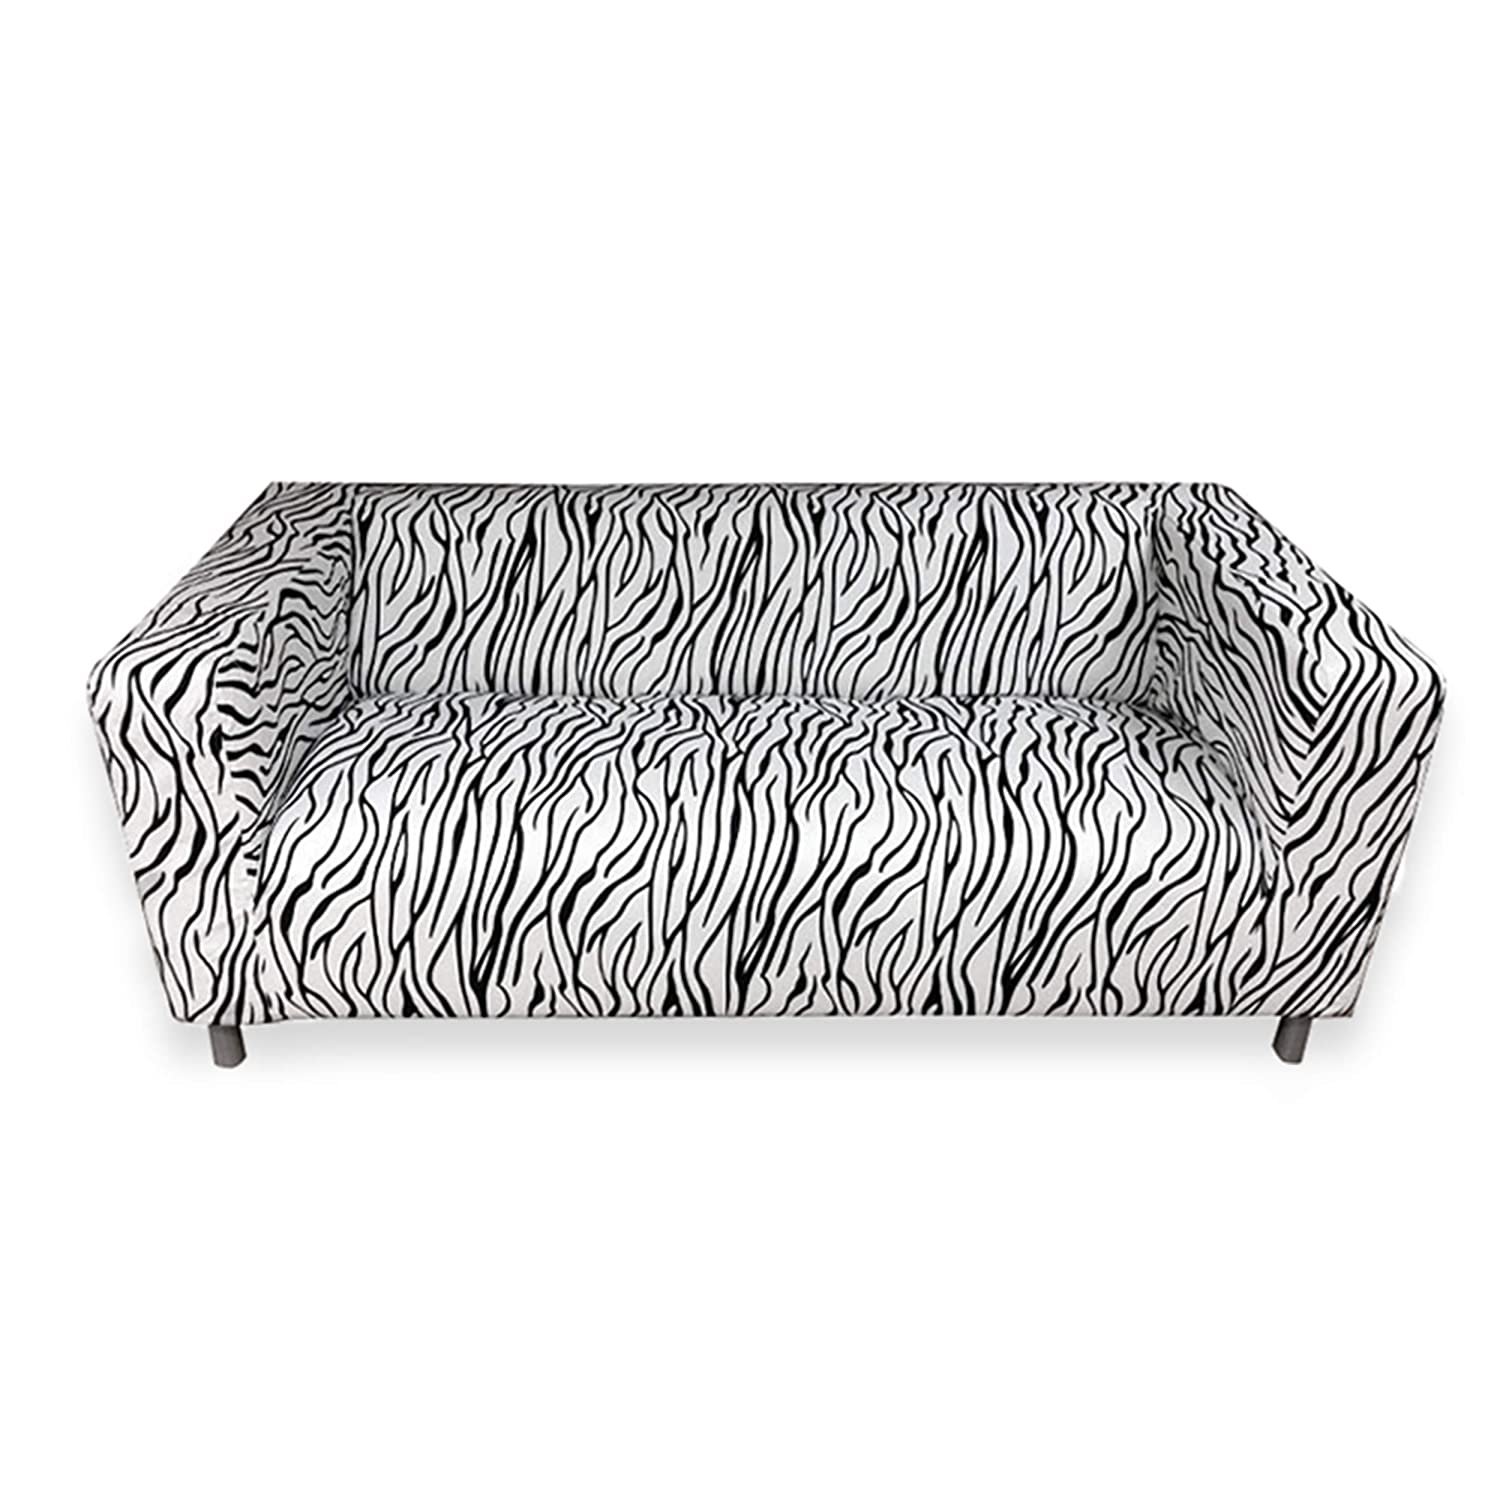 Superb Kao Mart Removable Sofa Slipcover Cover Fits Only For Ikea Klippan Sofa Zebra Animal Print Onthecornerstone Fun Painted Chair Ideas Images Onthecornerstoneorg